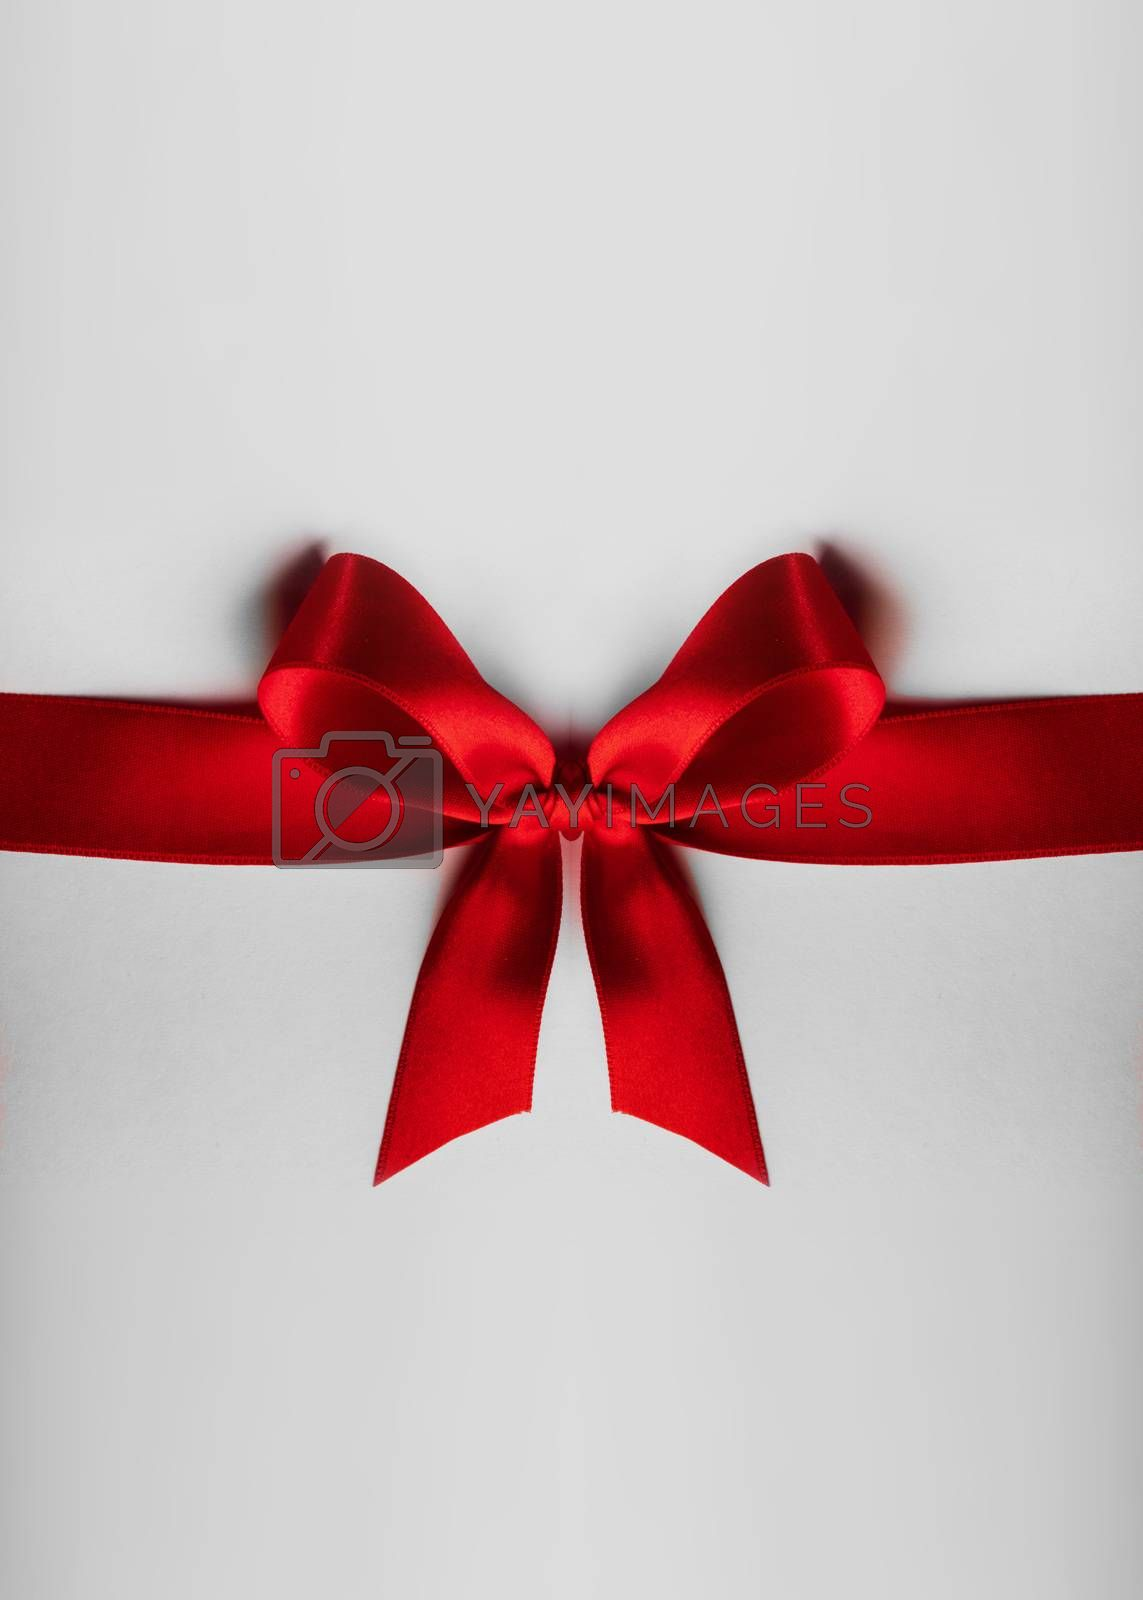 Red satin ribbon bow on white background